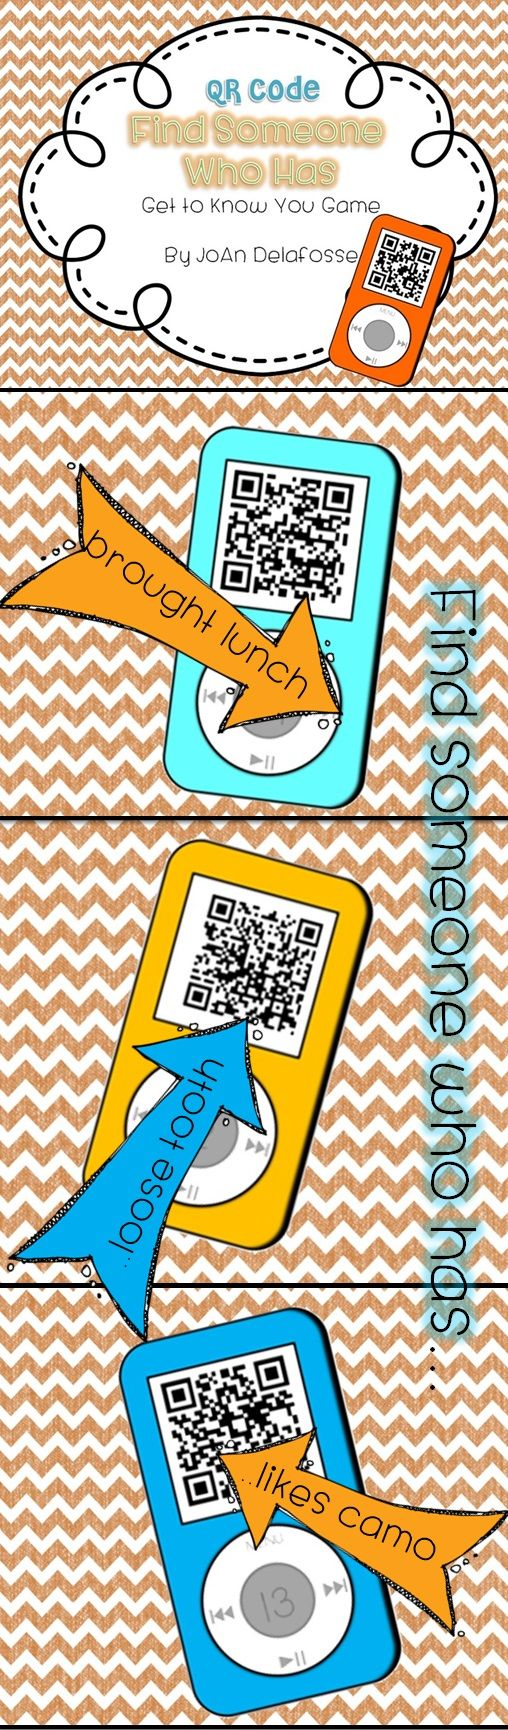 $$ Looking for a fun, engaging activity for back to school? Your students will be talking about this the rest of the year! This QR code game gets your students up, active, and building those lasting relationships on the very first day. Twenty-four cards are included, each with a get to know you question. $